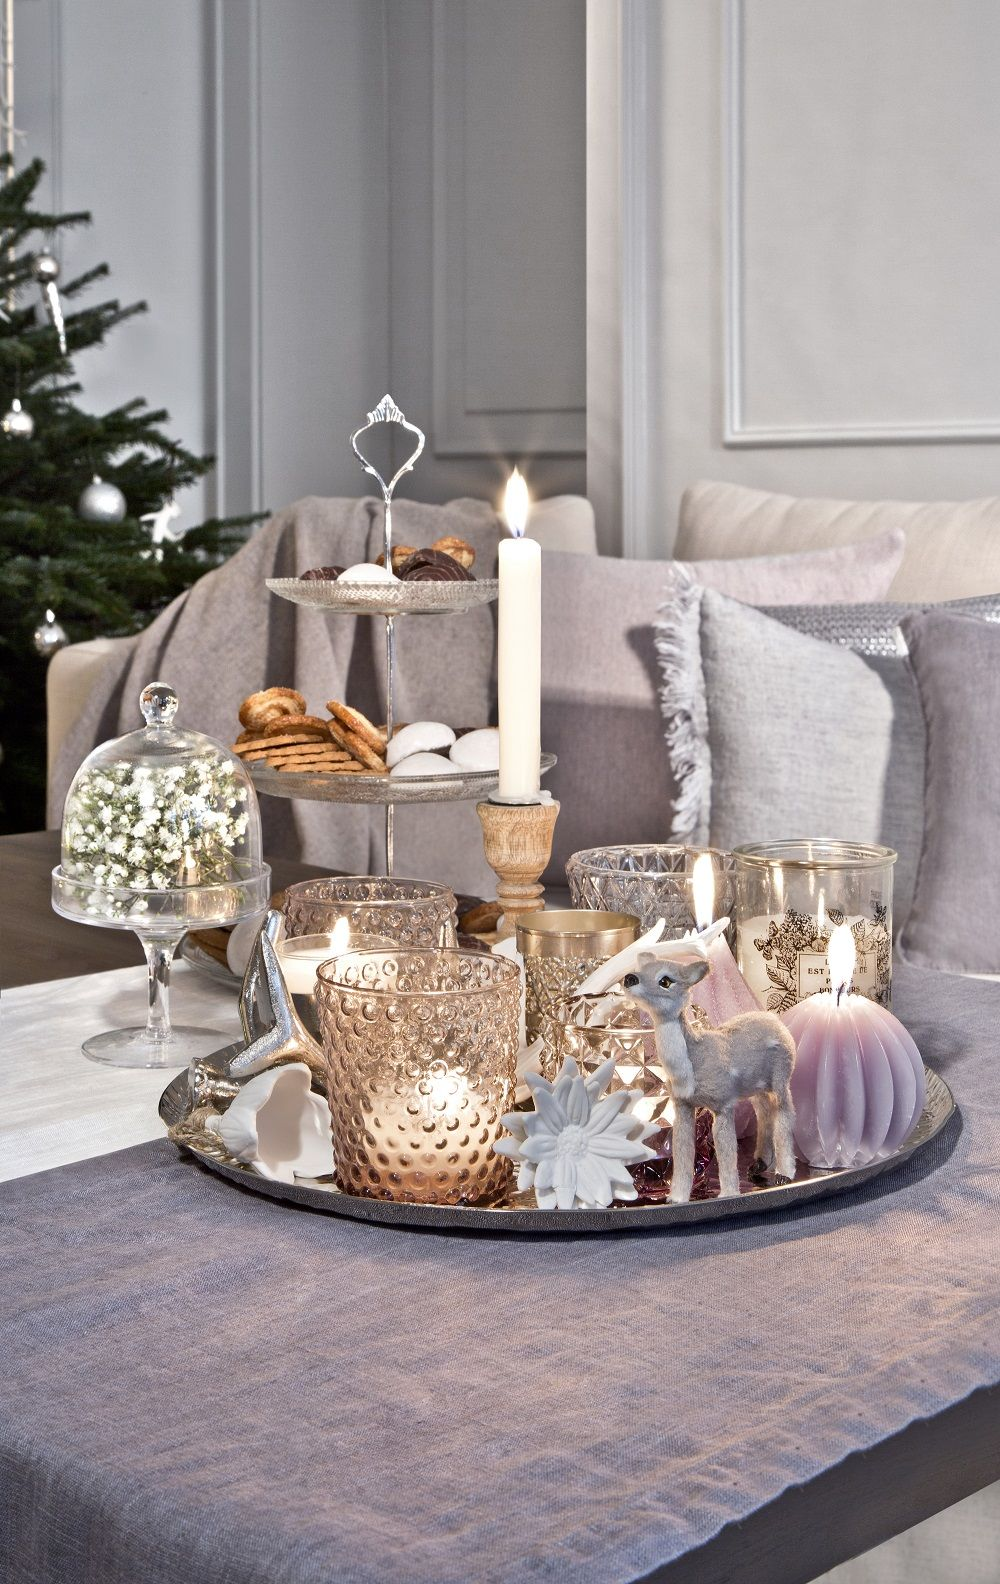 Couchtisch Westwing So Funktioniert Der Look »cozy Country Christmas«: Ein